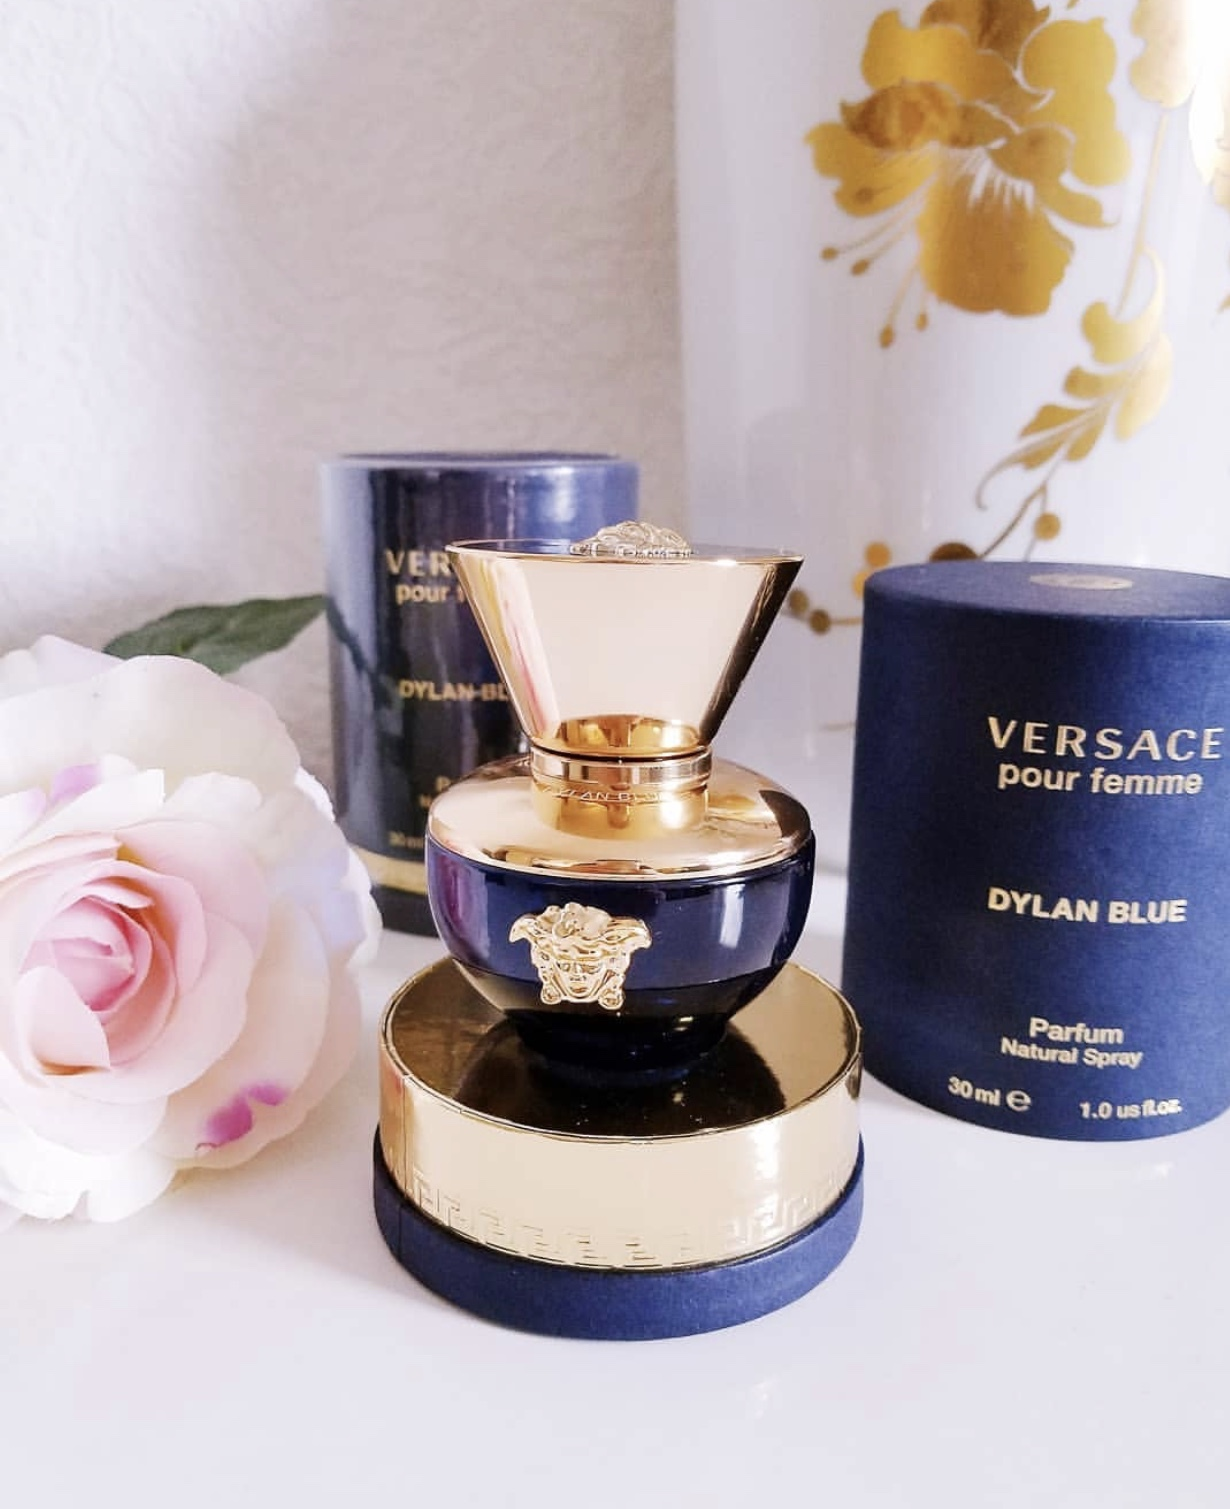 20920def Versace Dylan Blue Pour Femme reviews in Perfume - ChickAdvisor